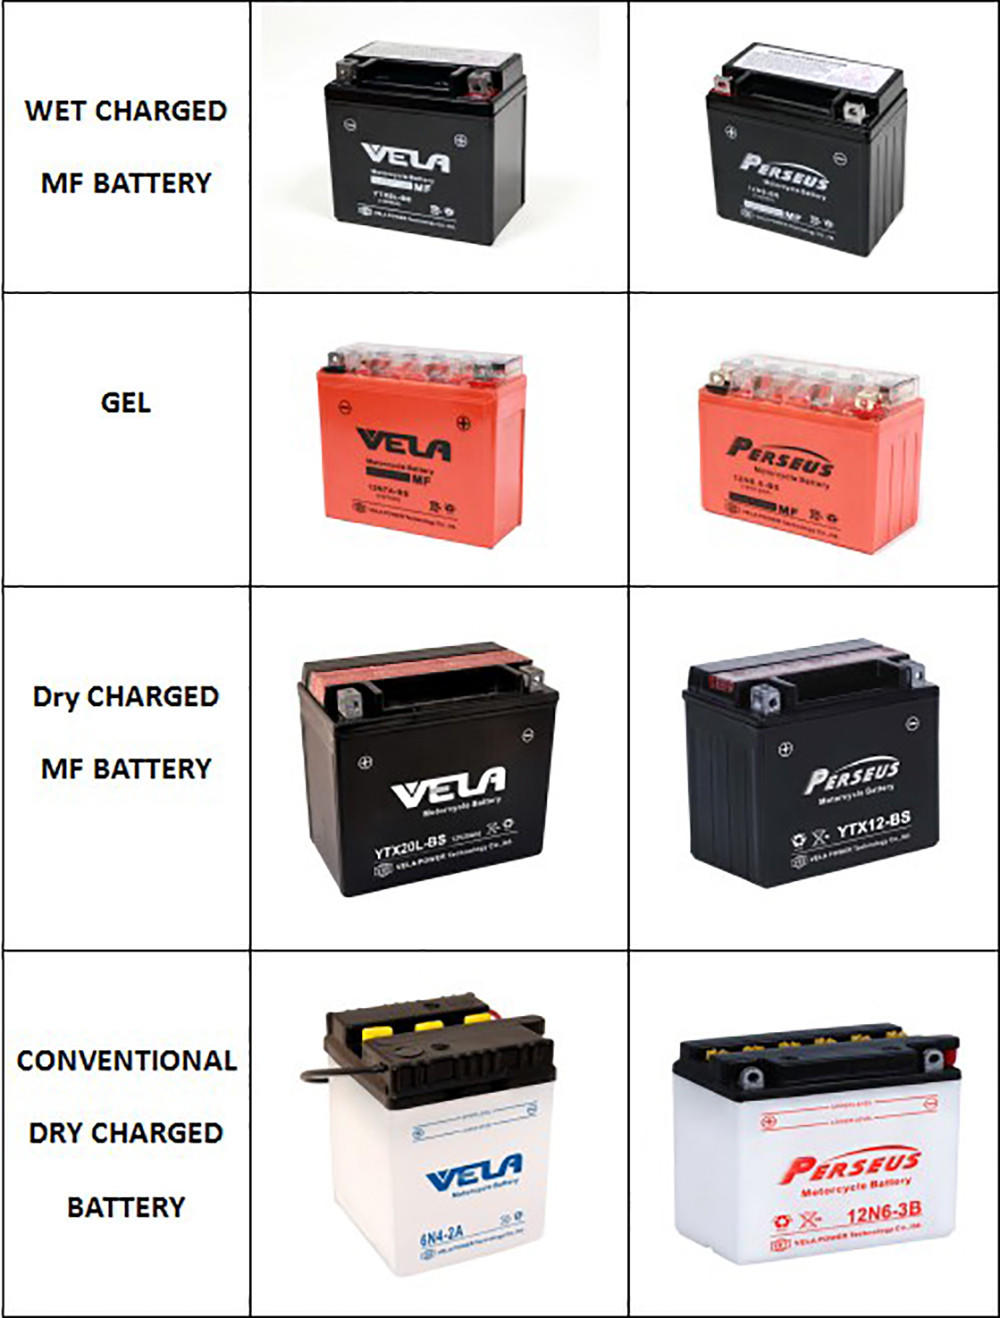 VELA dry charged battery widely used for motorcyles-2